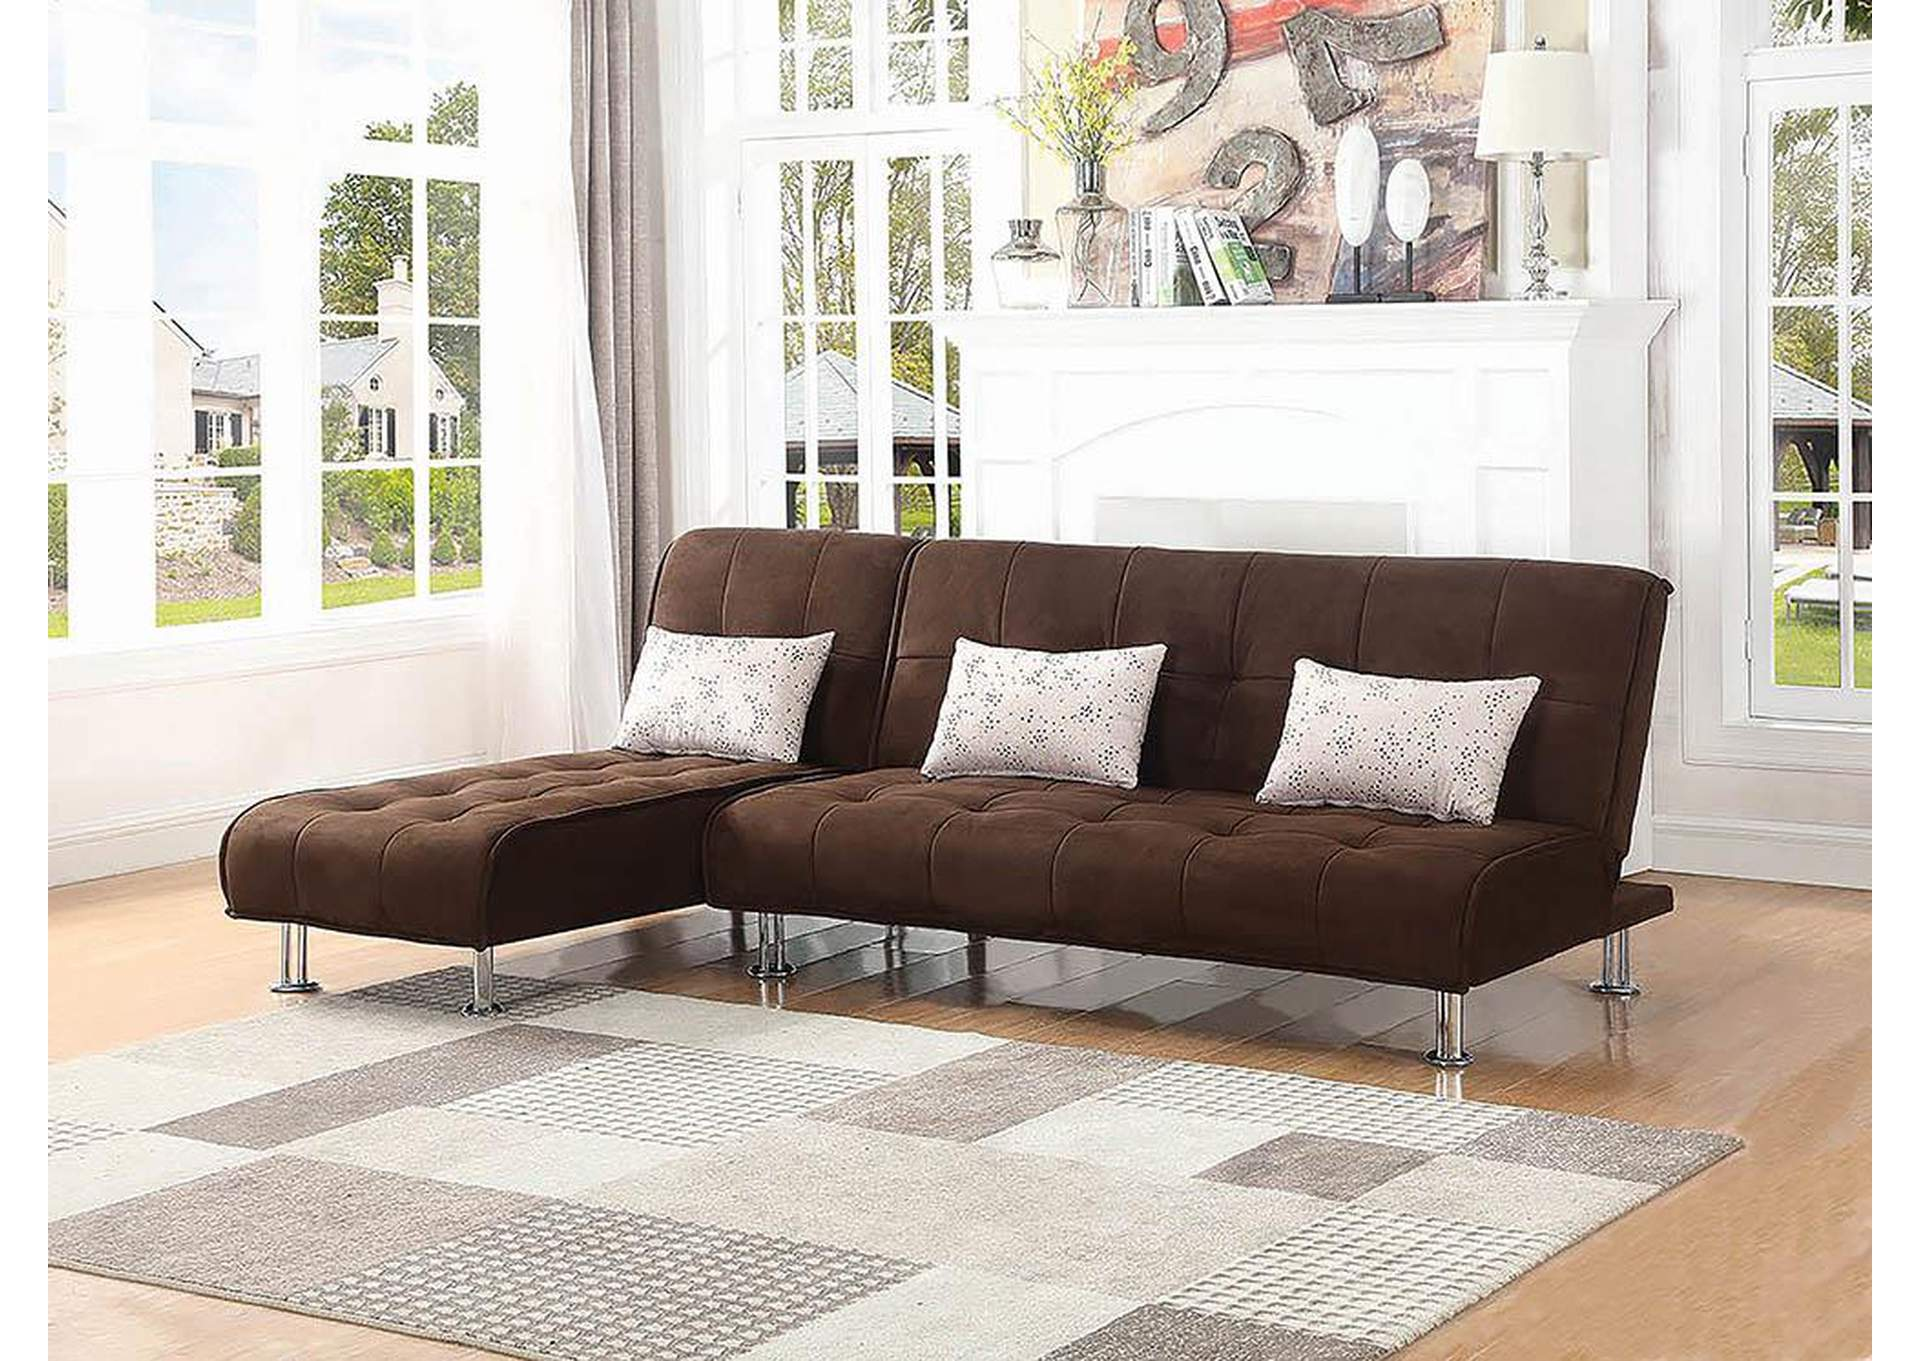 Brown Chaise Sofa Bed,Coaster Furniture